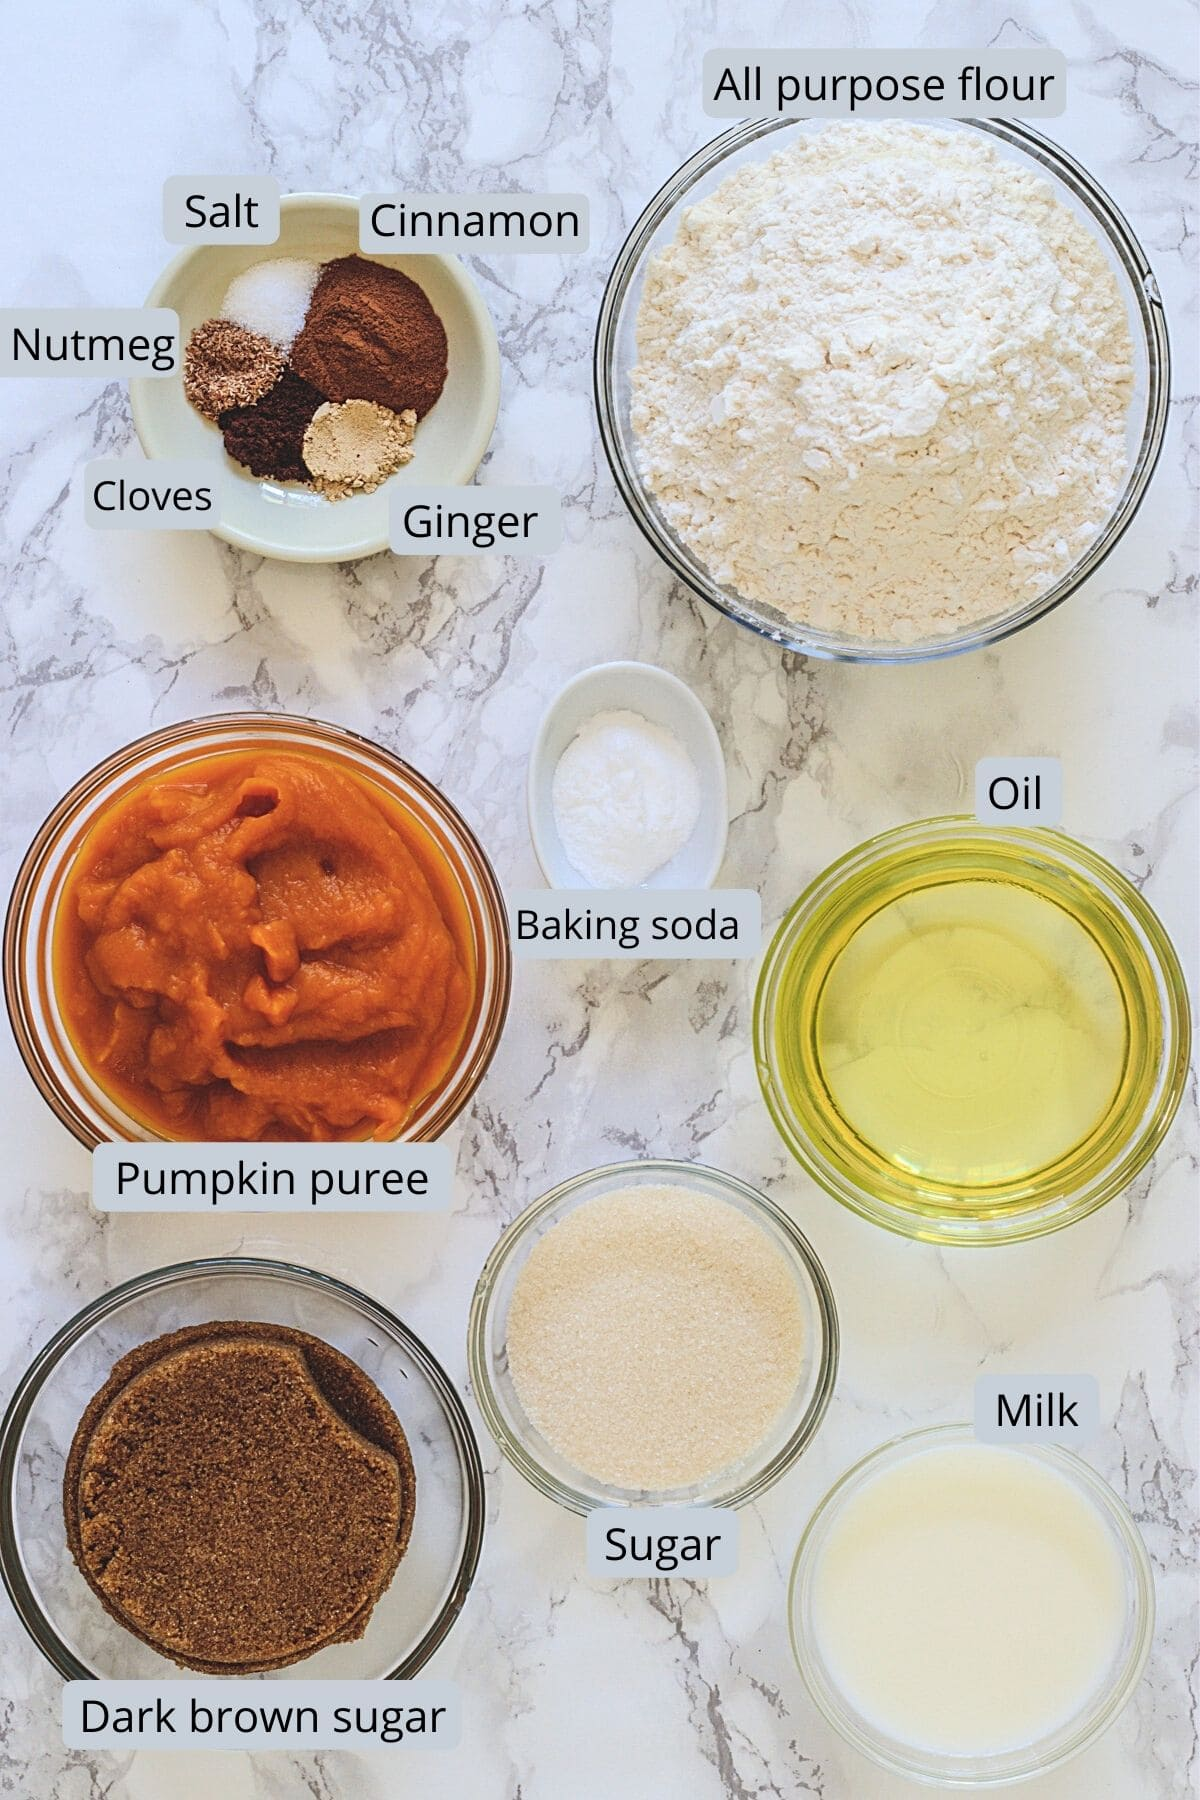 Ingredients used in eggless pumpkin bread includes flour, sugar, spices, baking soda, oil, milk, pumpkin puree.